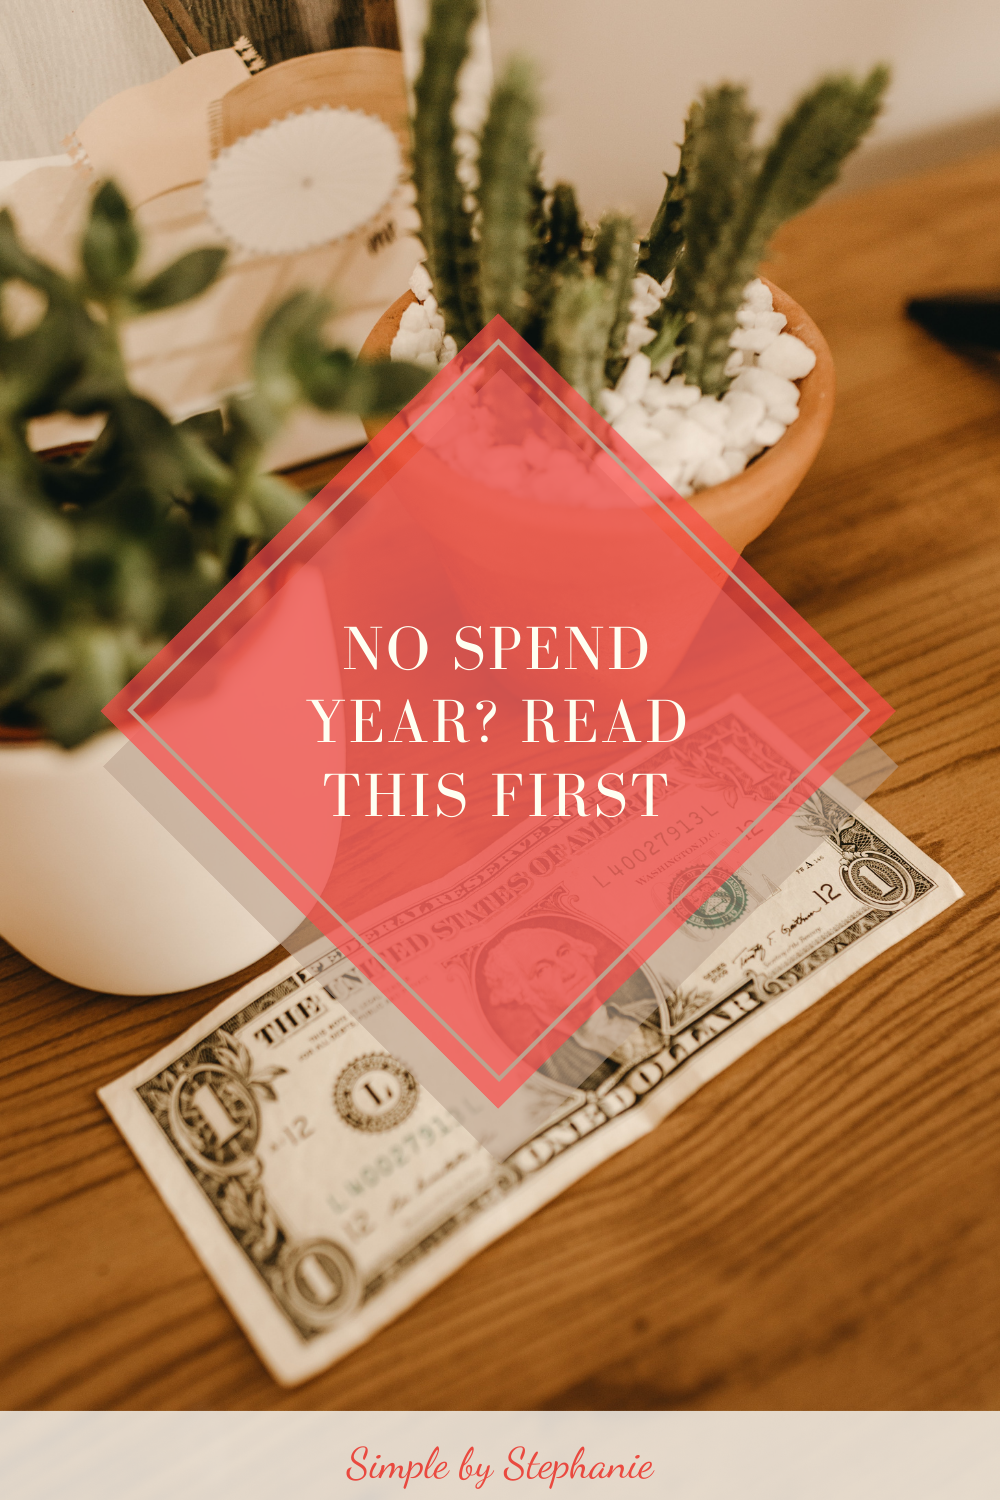 Starting a No Spend Year? Read This First